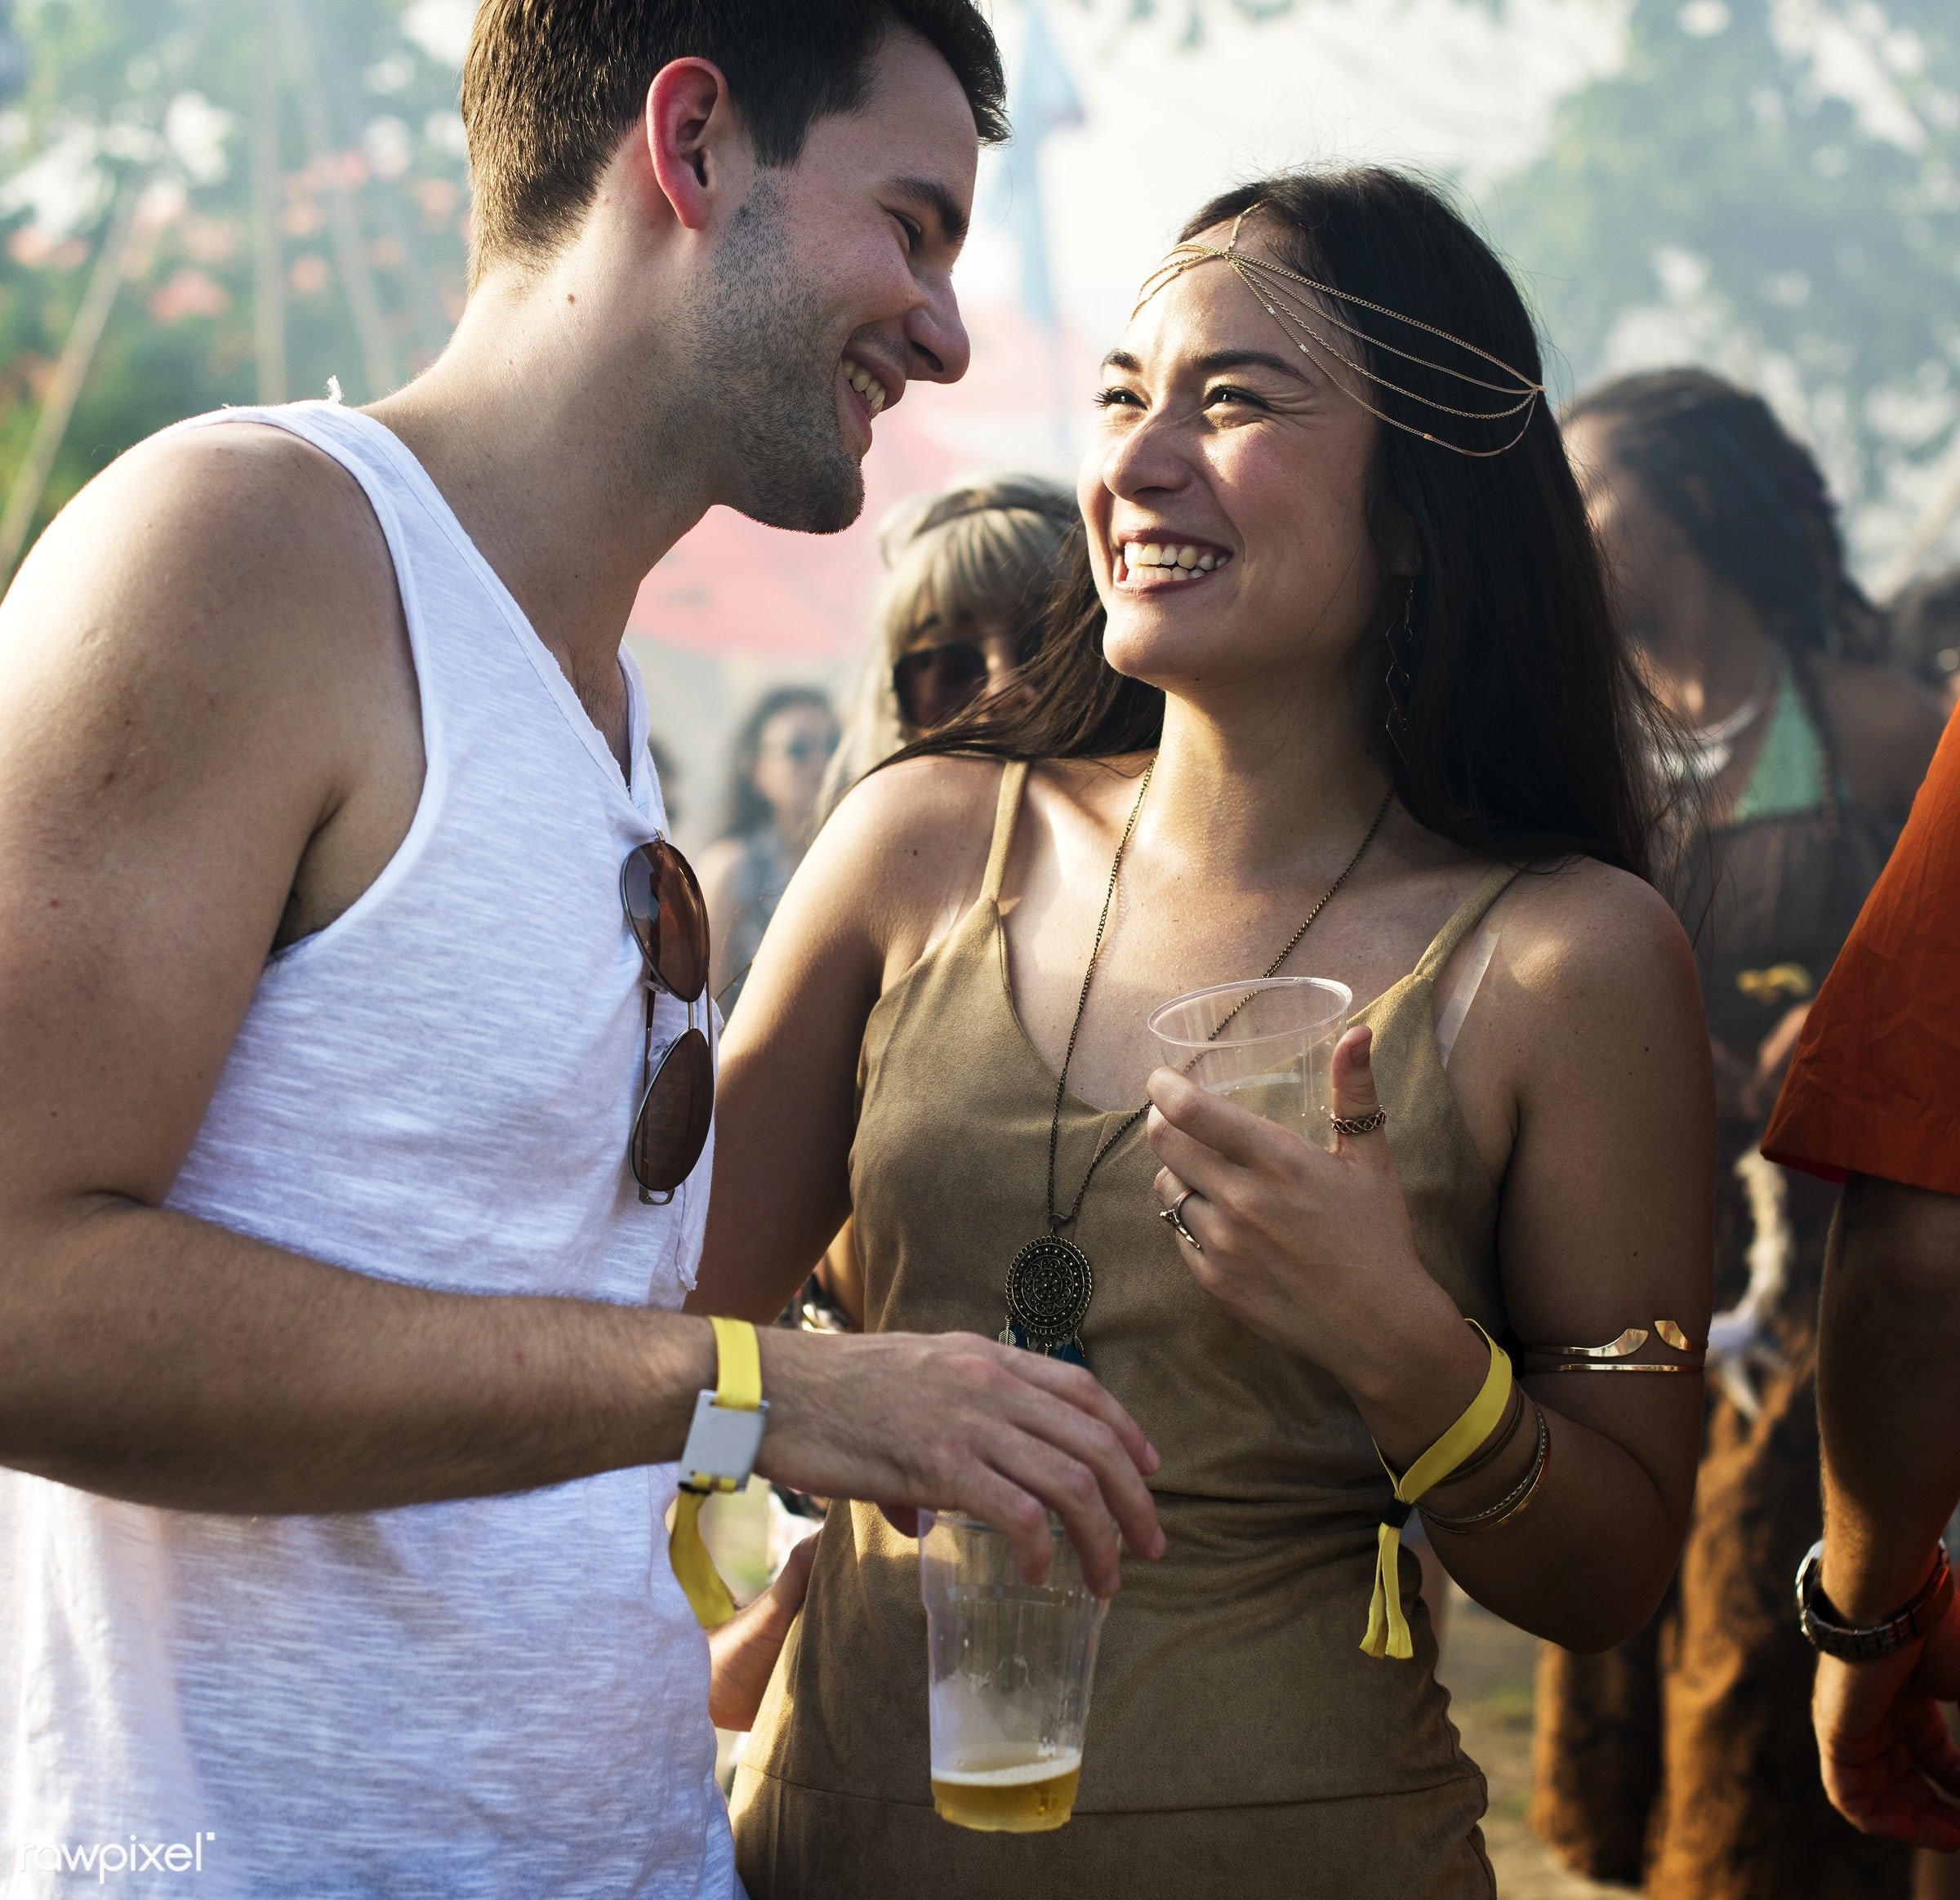 concert, person, drinking, carefree, party, people, together, beer, socializing, hands, event, woman, celebrating, lifestyle...